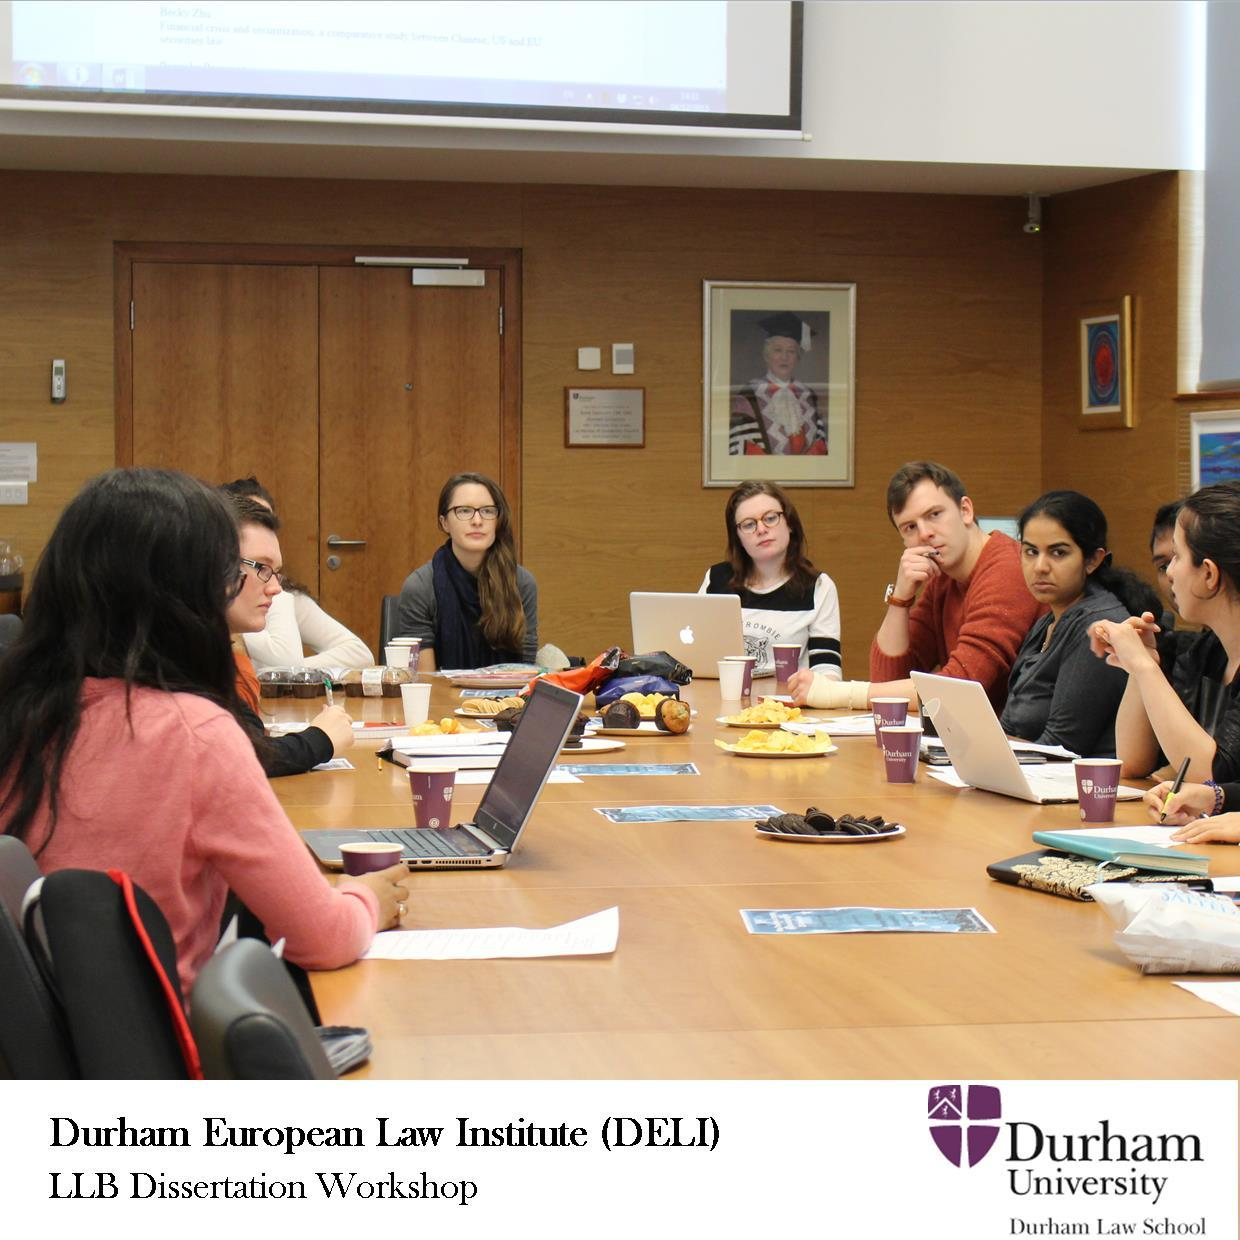 dissertation of stephen durham Kathleen dunham kathleen hc henderson,  dr christopher benedetti has spent over 20 years in education,  ep 8030 dissertation seminar:.